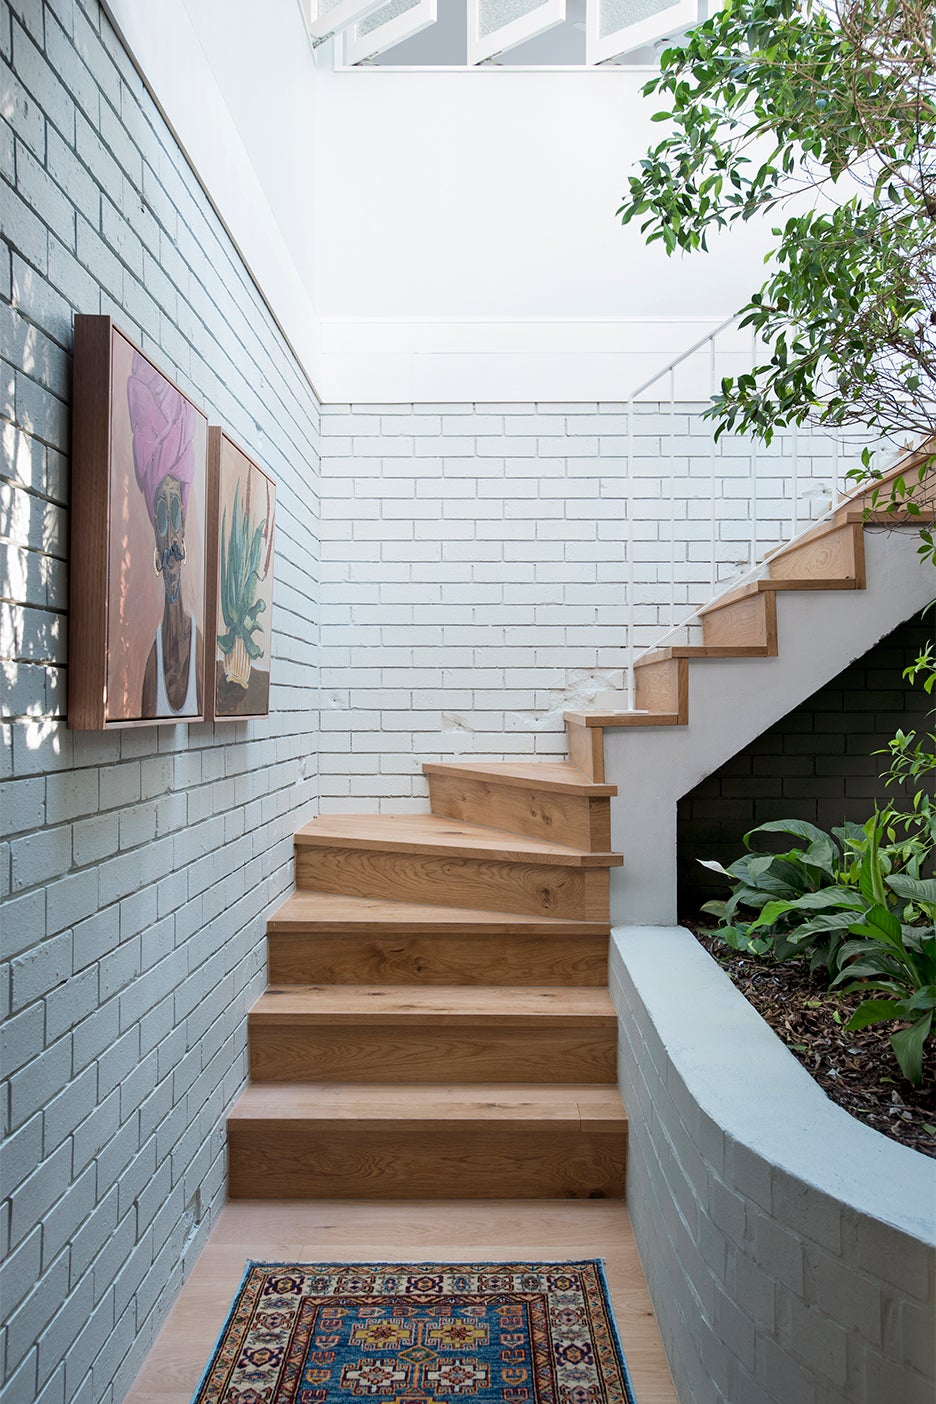 stairwell lined with white bricks